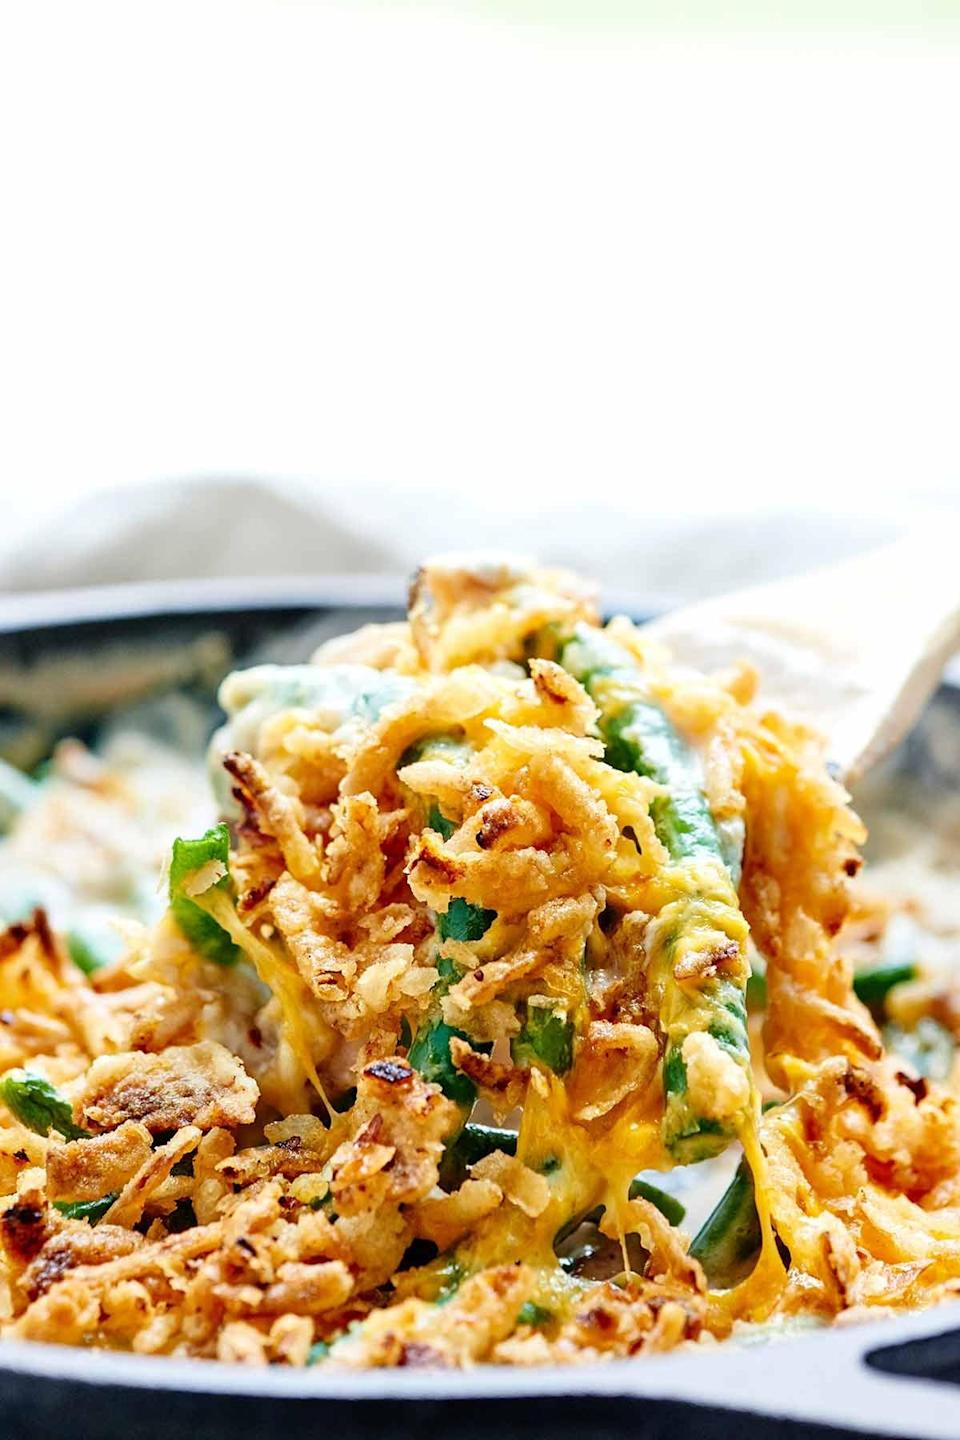 """<p>With just 11 ingredients, this casserole recipe is one to remember. Every forkful offers creamy beans, crunchy flakes, and drool-worthy flavor. Yes, please.</p> <p><strong>Get the recipe</strong>: <a href=""""https://showmetheyummy.com/green-bean-casserole-recipe/"""" class=""""link rapid-noclick-resp"""" rel=""""nofollow noopener"""" target=""""_blank"""" data-ylk=""""slk:one-pot green bean casserole"""">one-pot green bean casserole</a></p>"""